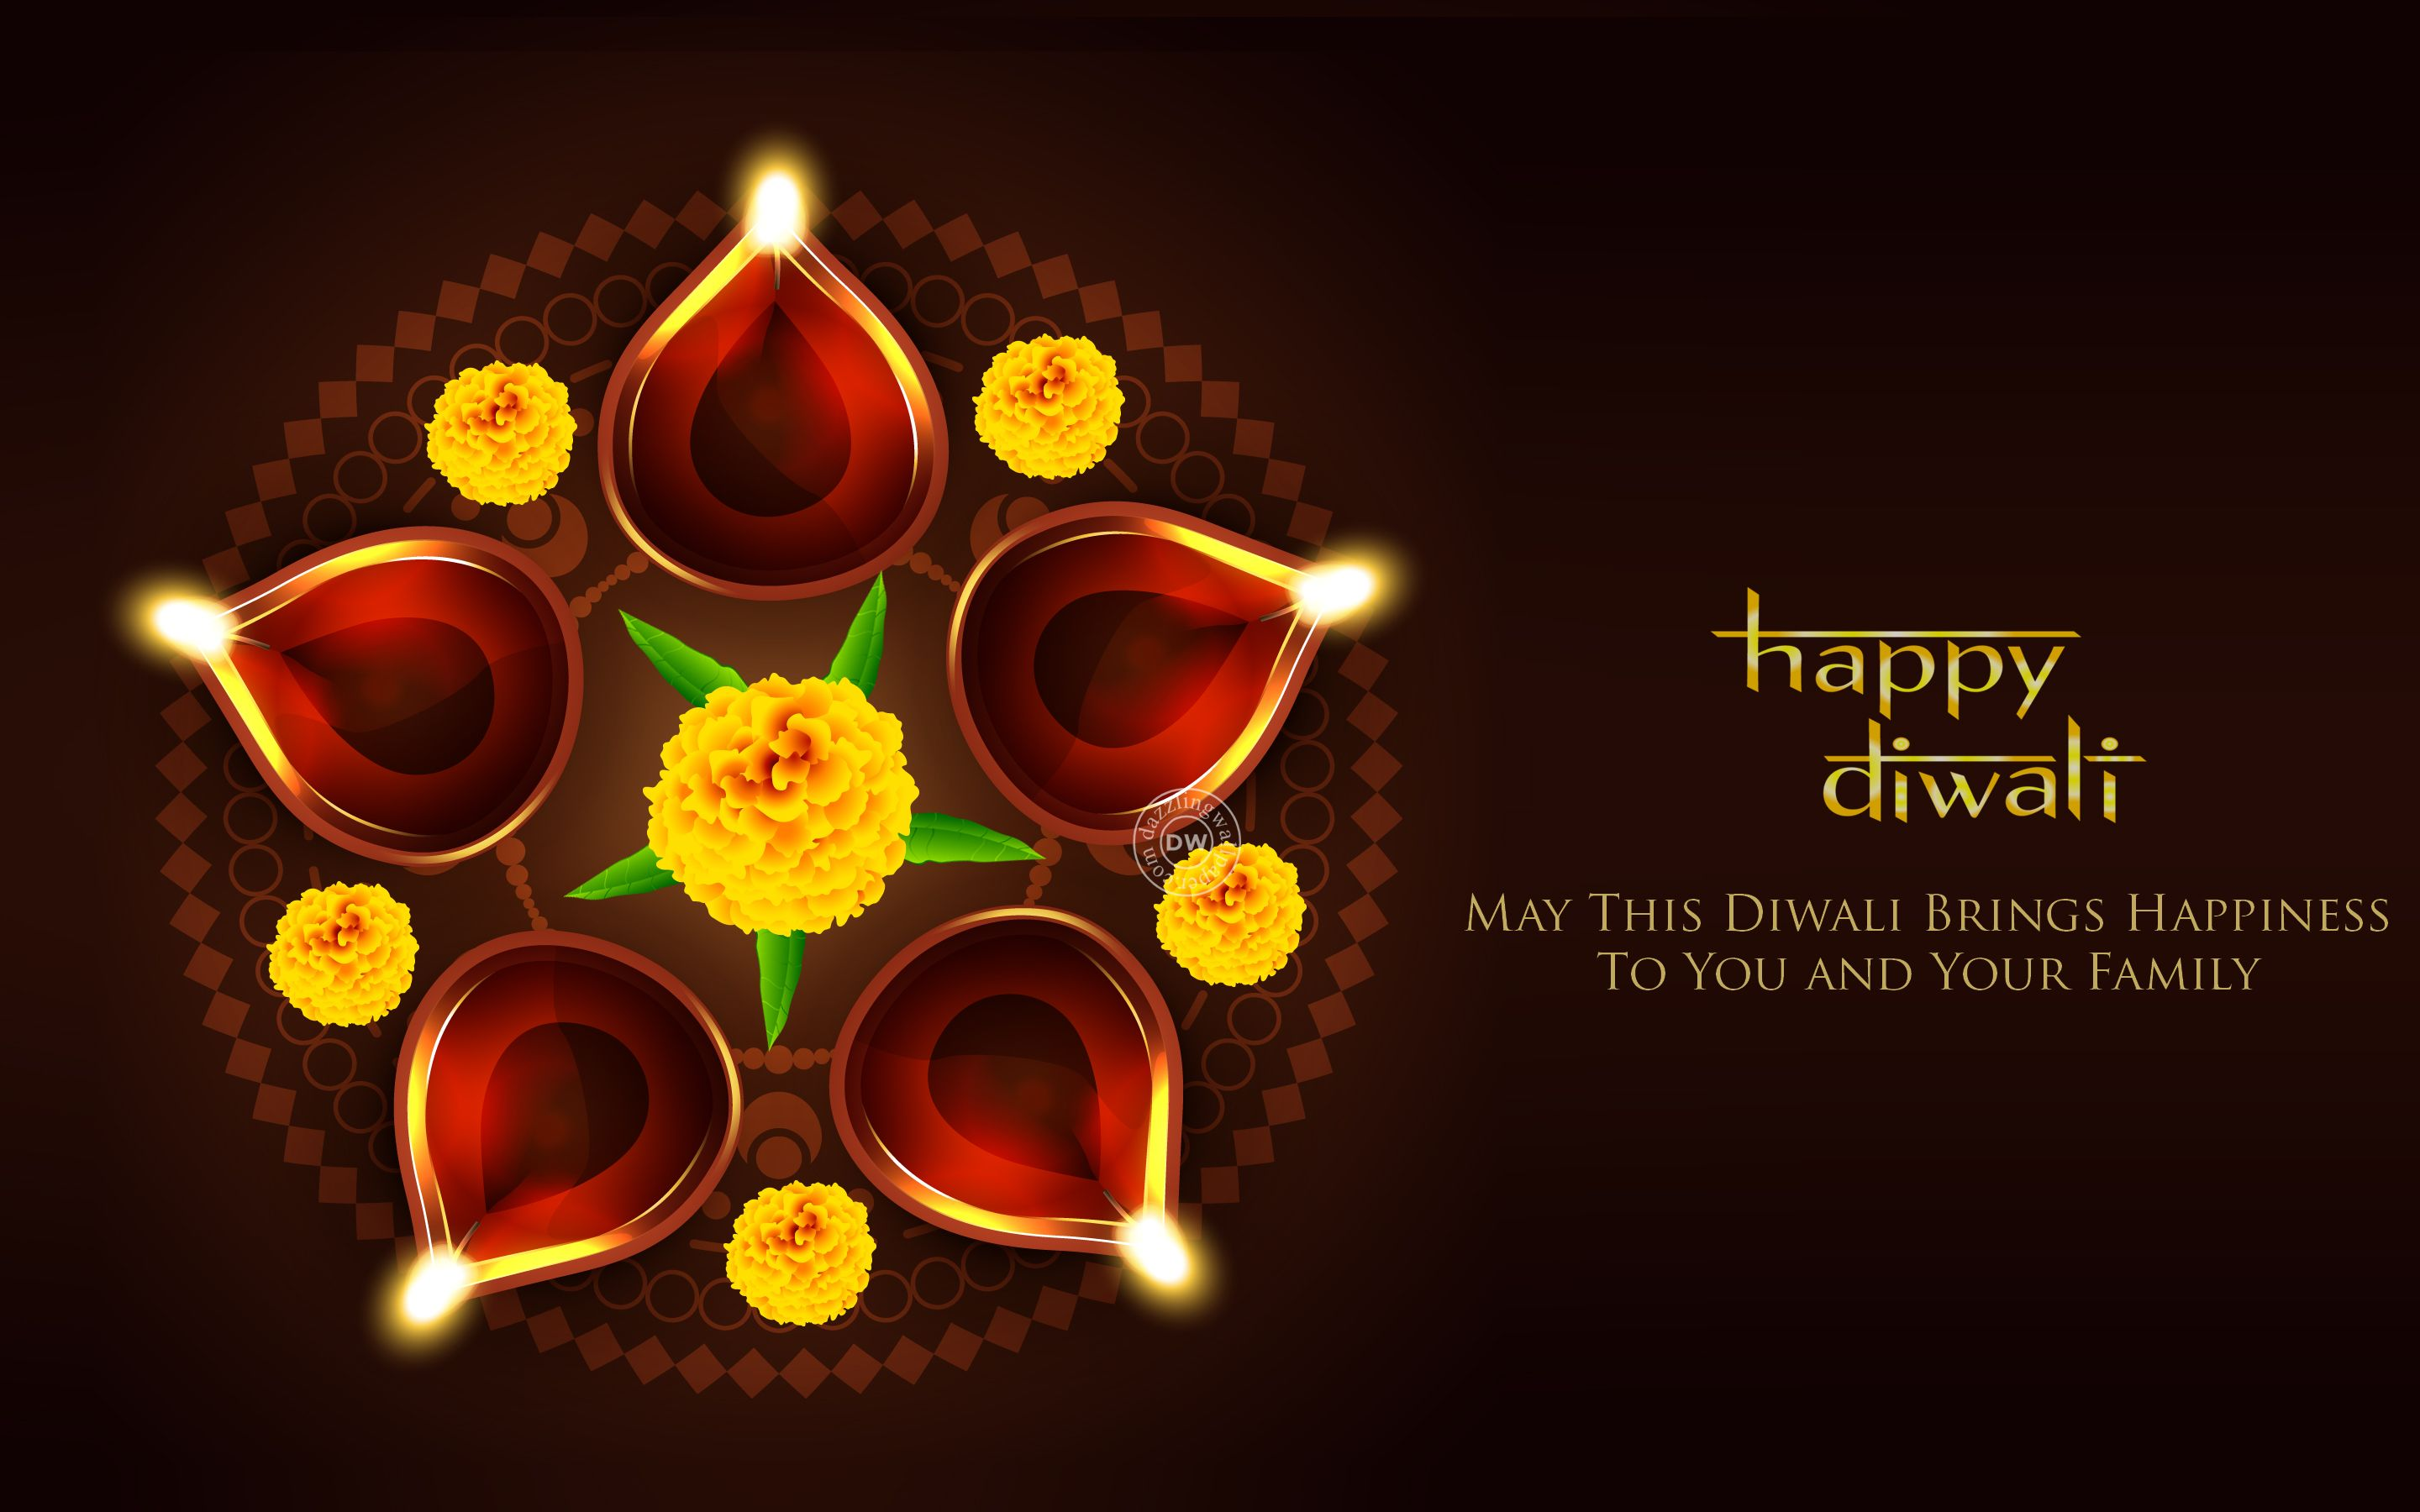 diwali hd wallpaper with rangoli quotes happy diwali 2014